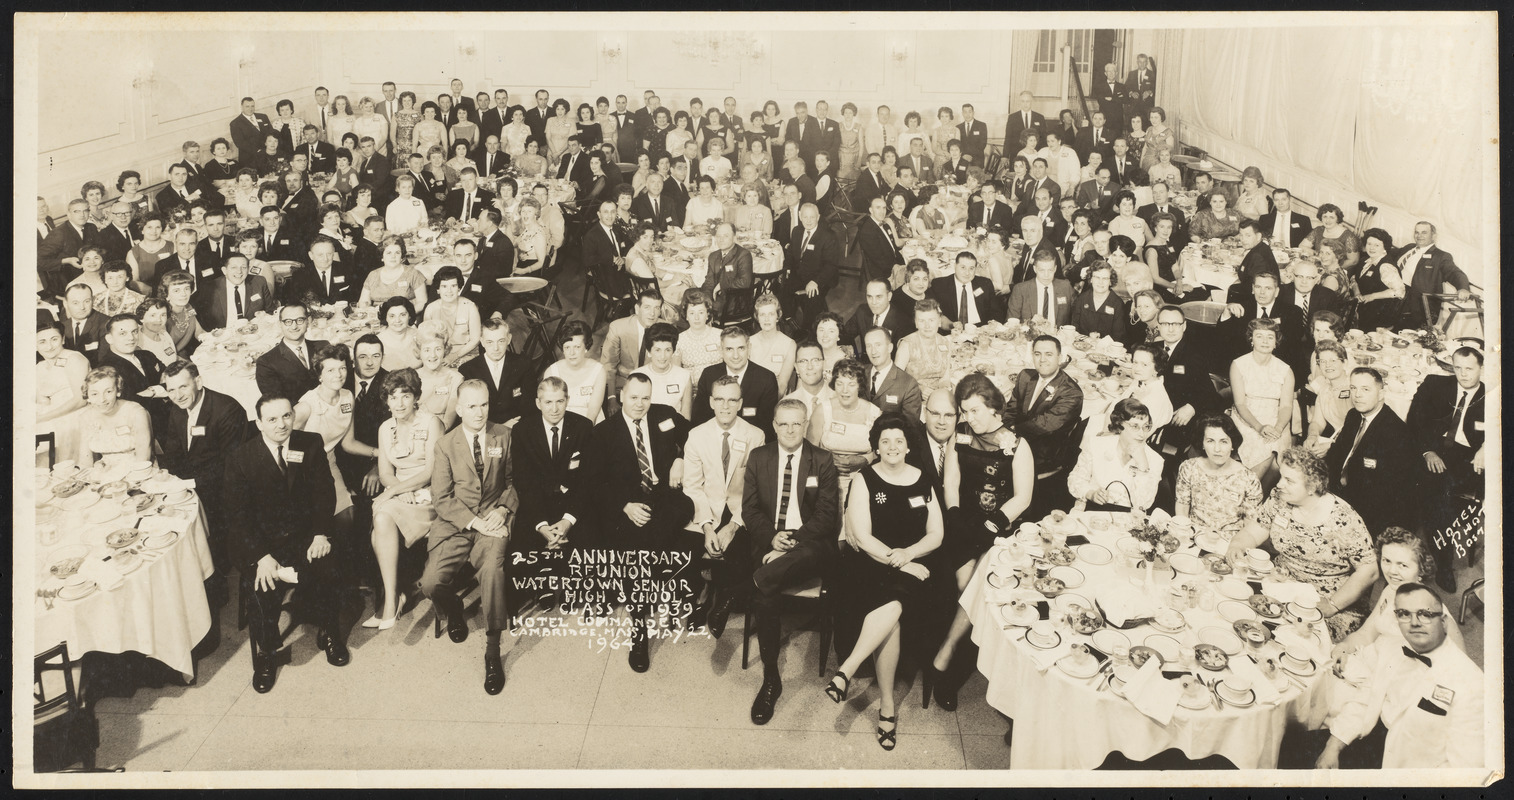 25th anniversary reunion - Watertown Senior High School Class of 1939